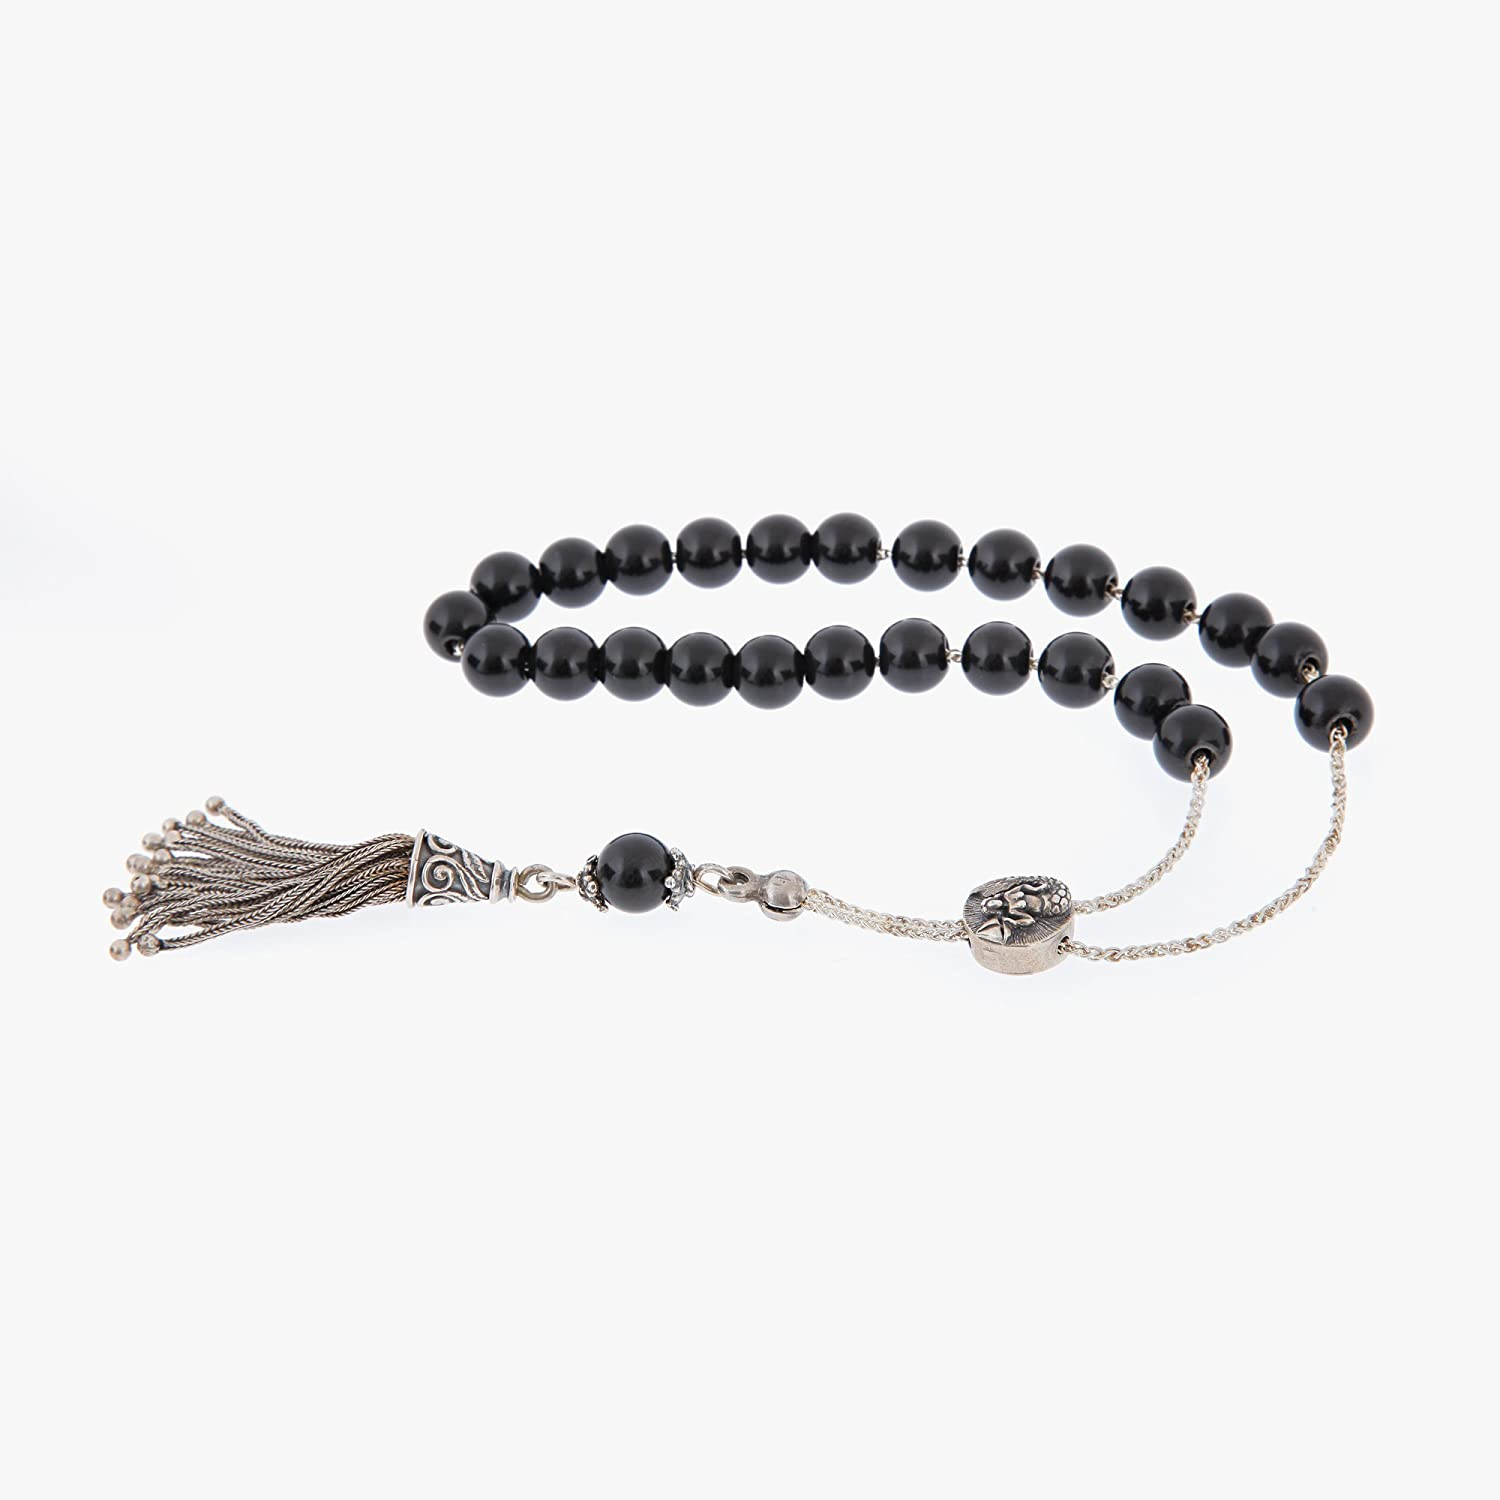 Onyx Gemstone Handmade Worry Beads